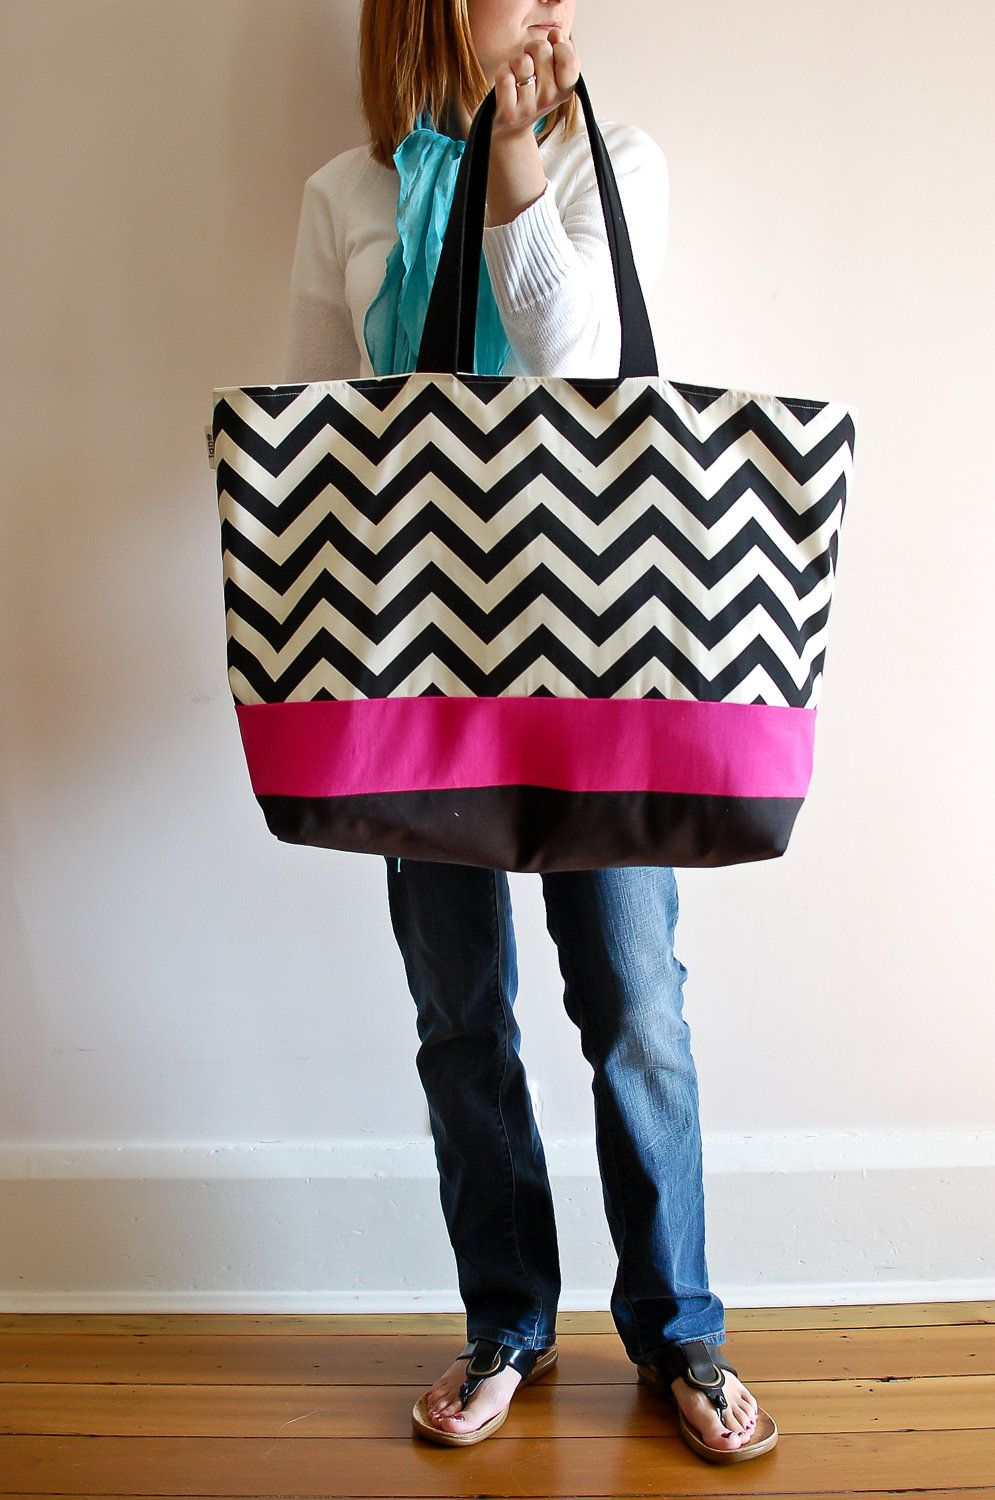 Extra Large Beach Bag Tote In Black Chevron With A Pinch Of Hot Pink